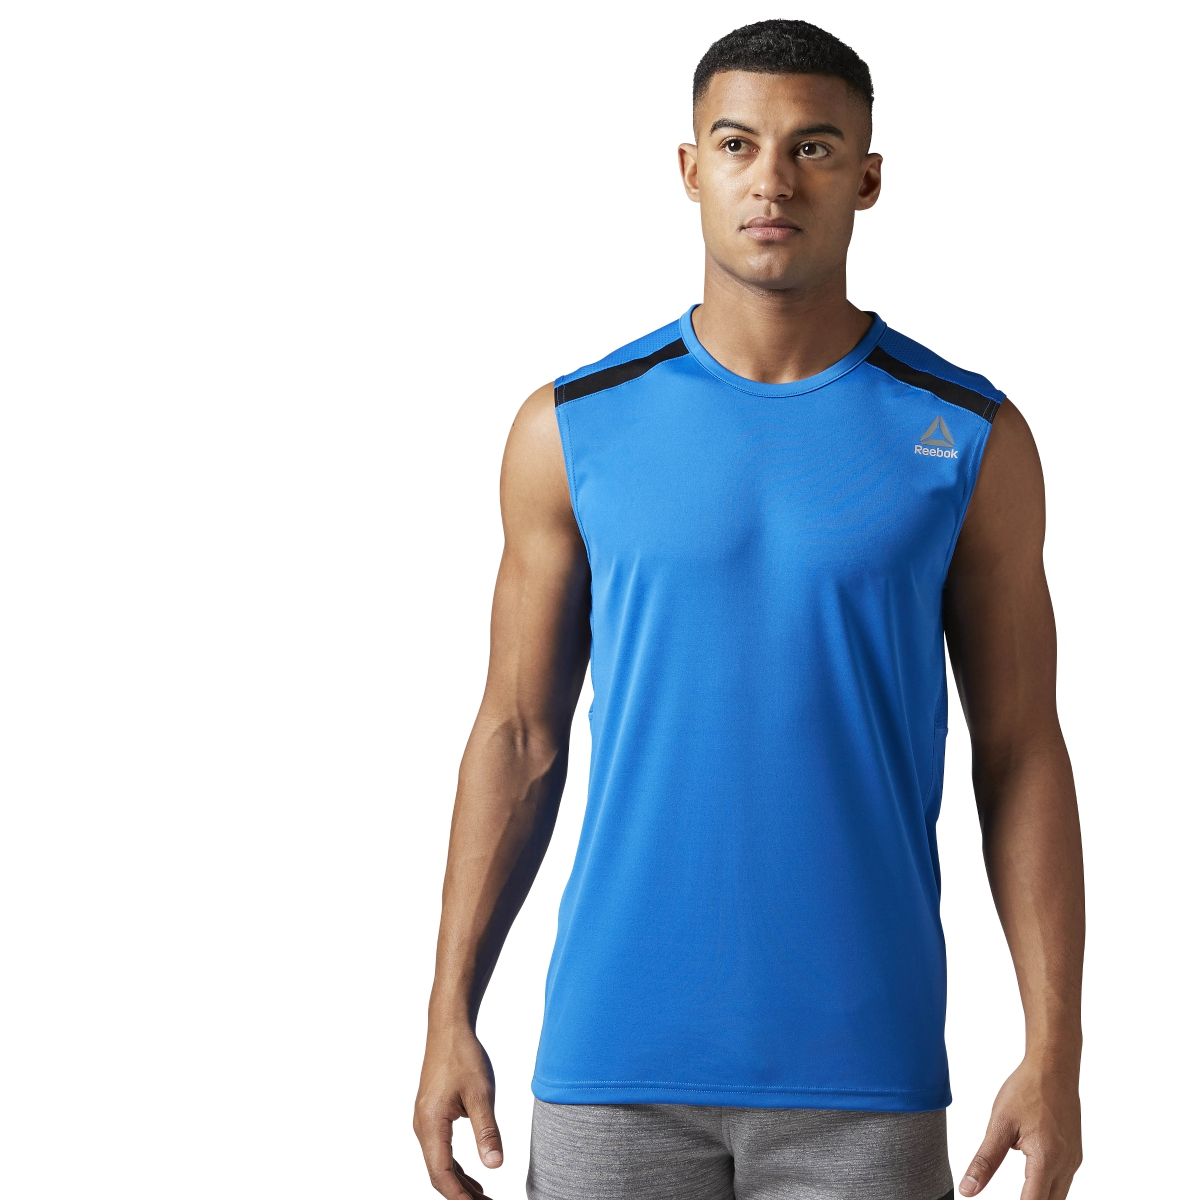 Reebok men 39 s workout ready tech tank fitness training Fitness shirts for men